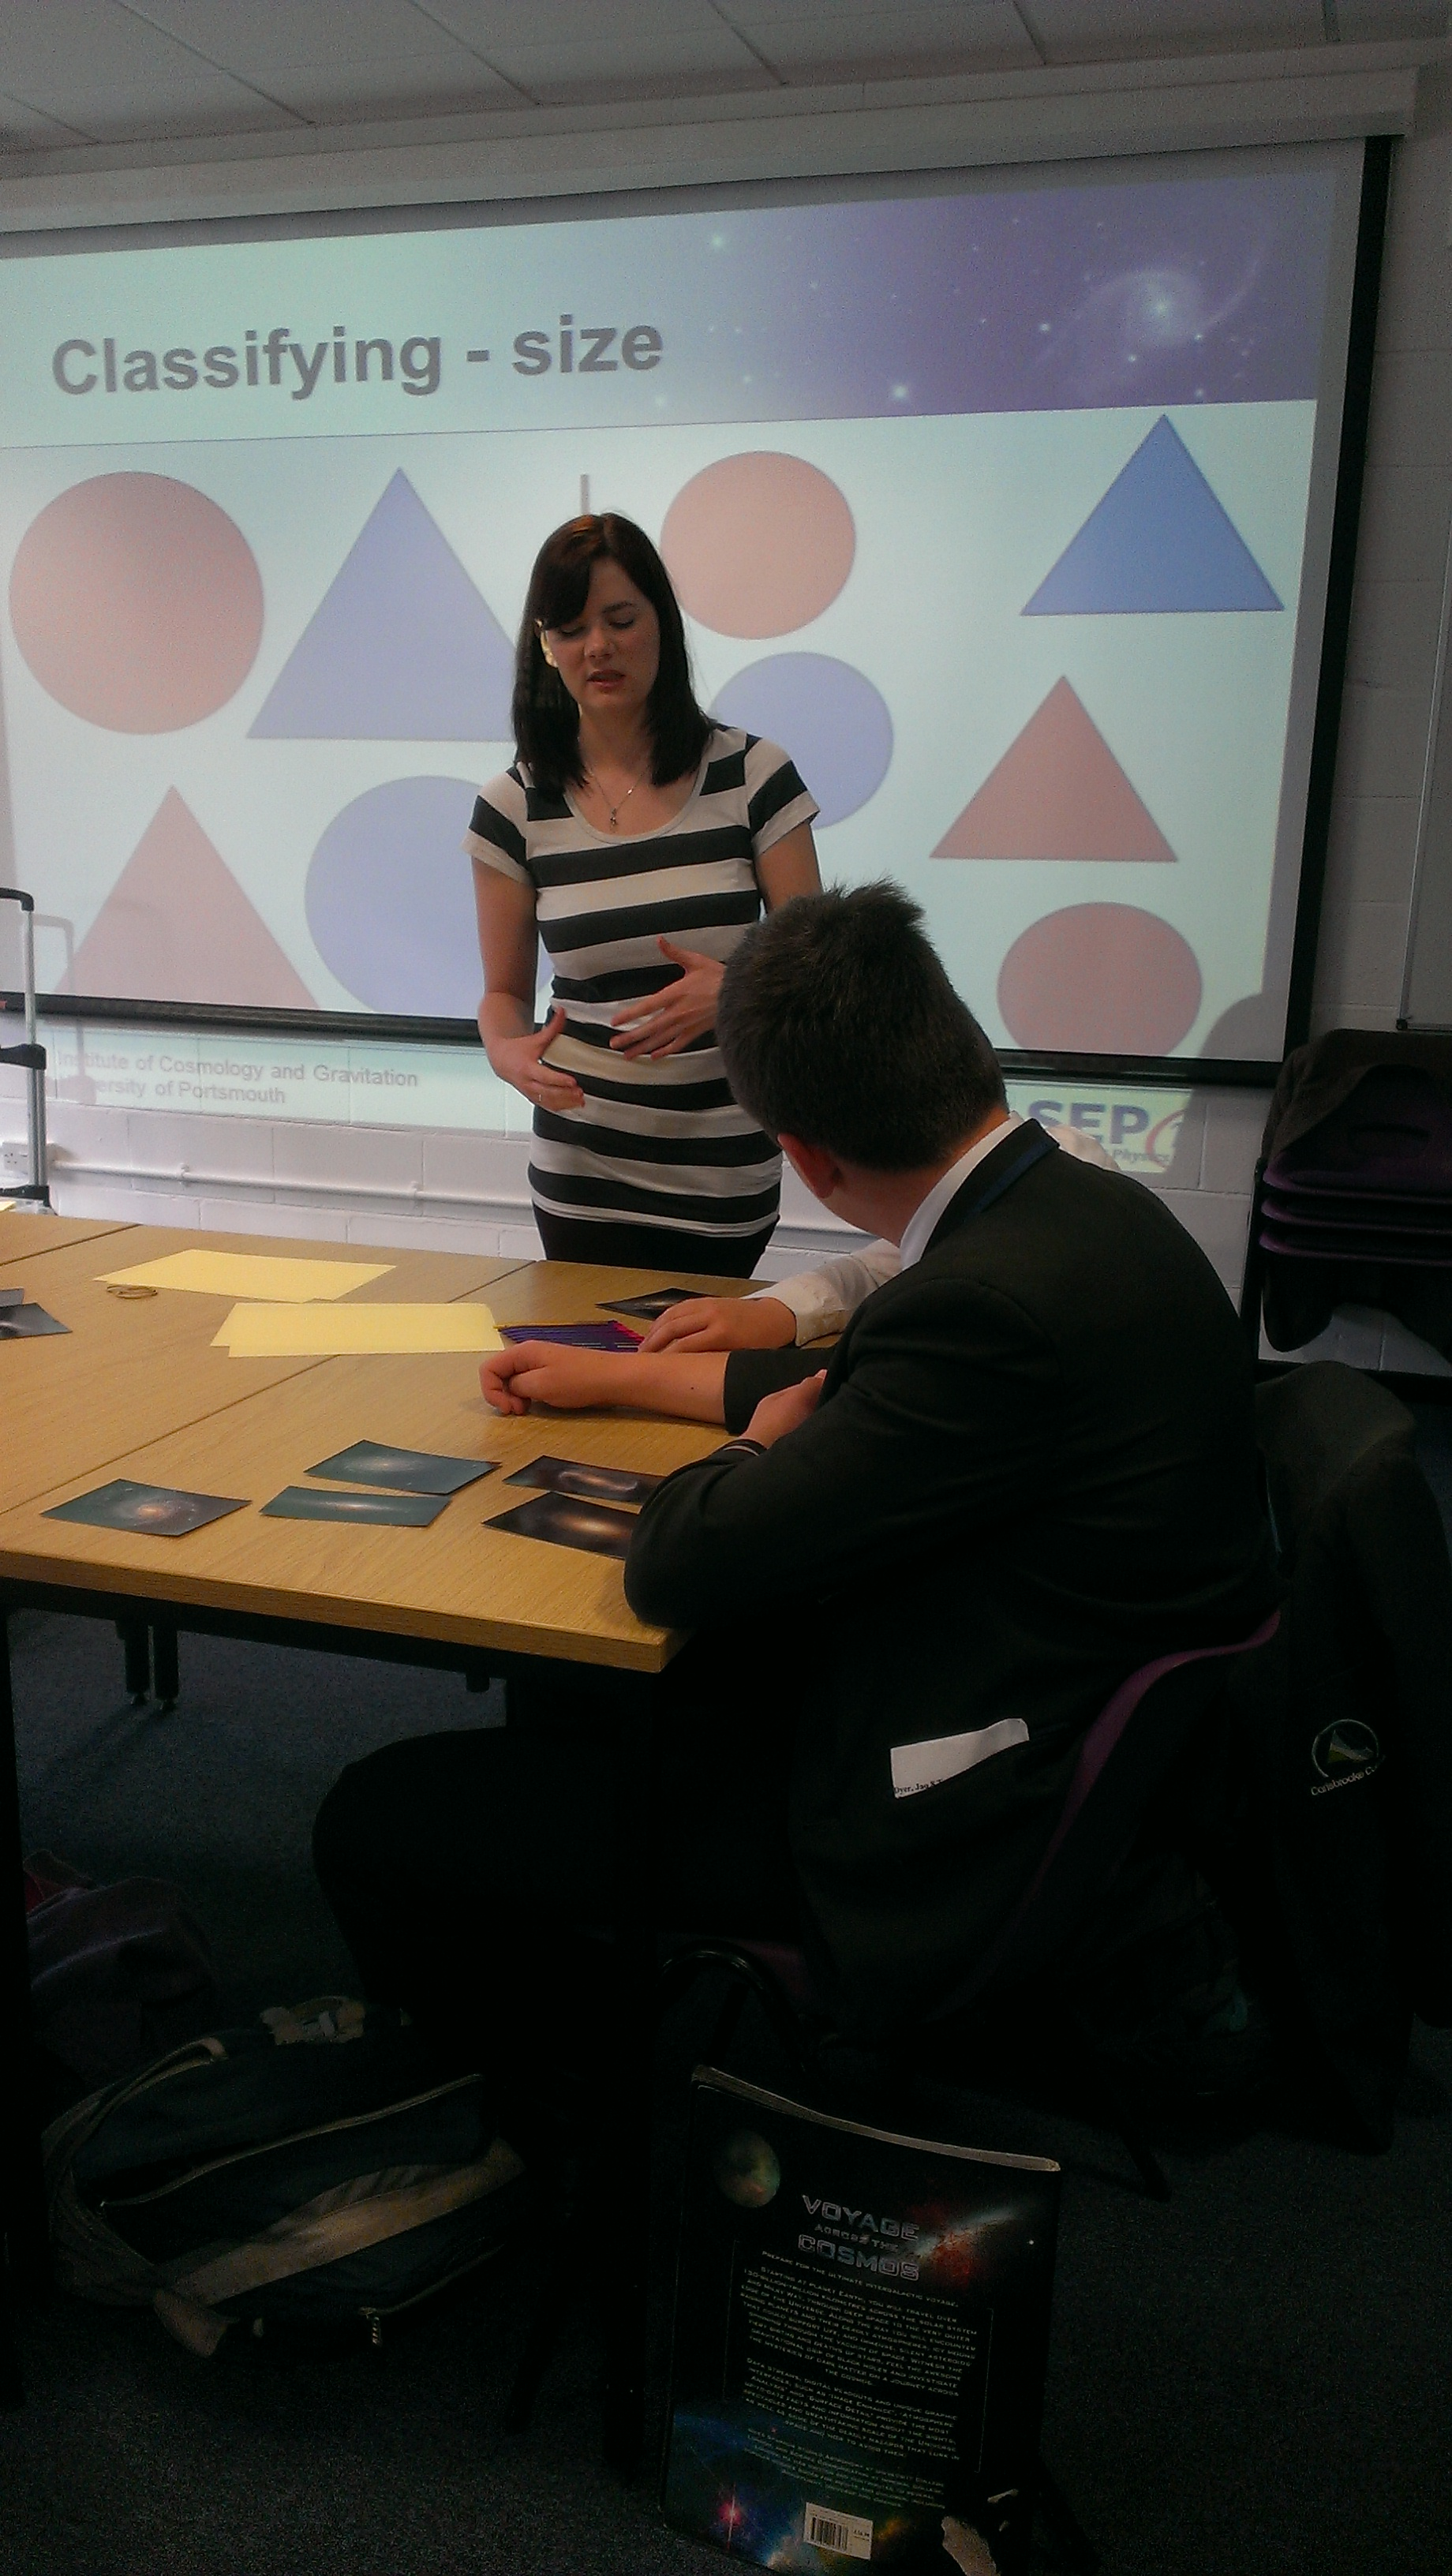 Claire Le Cras explaining galaxy shapes at Think Bigger in 2013.